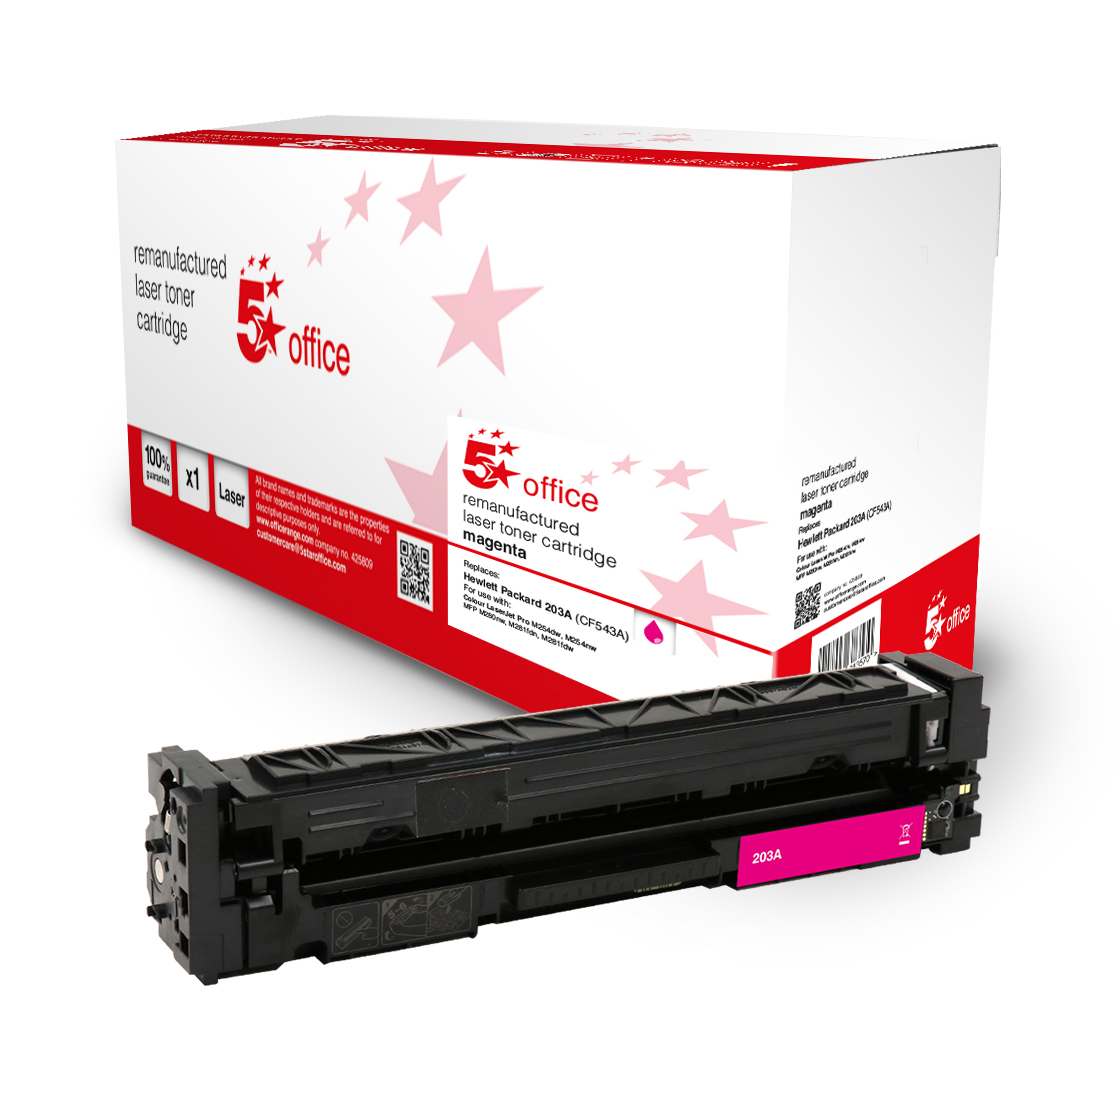 5 Star Office Remanufactured Toner Cartridge Page Life Magenta 1300pp HP 203A CF543A Alternative